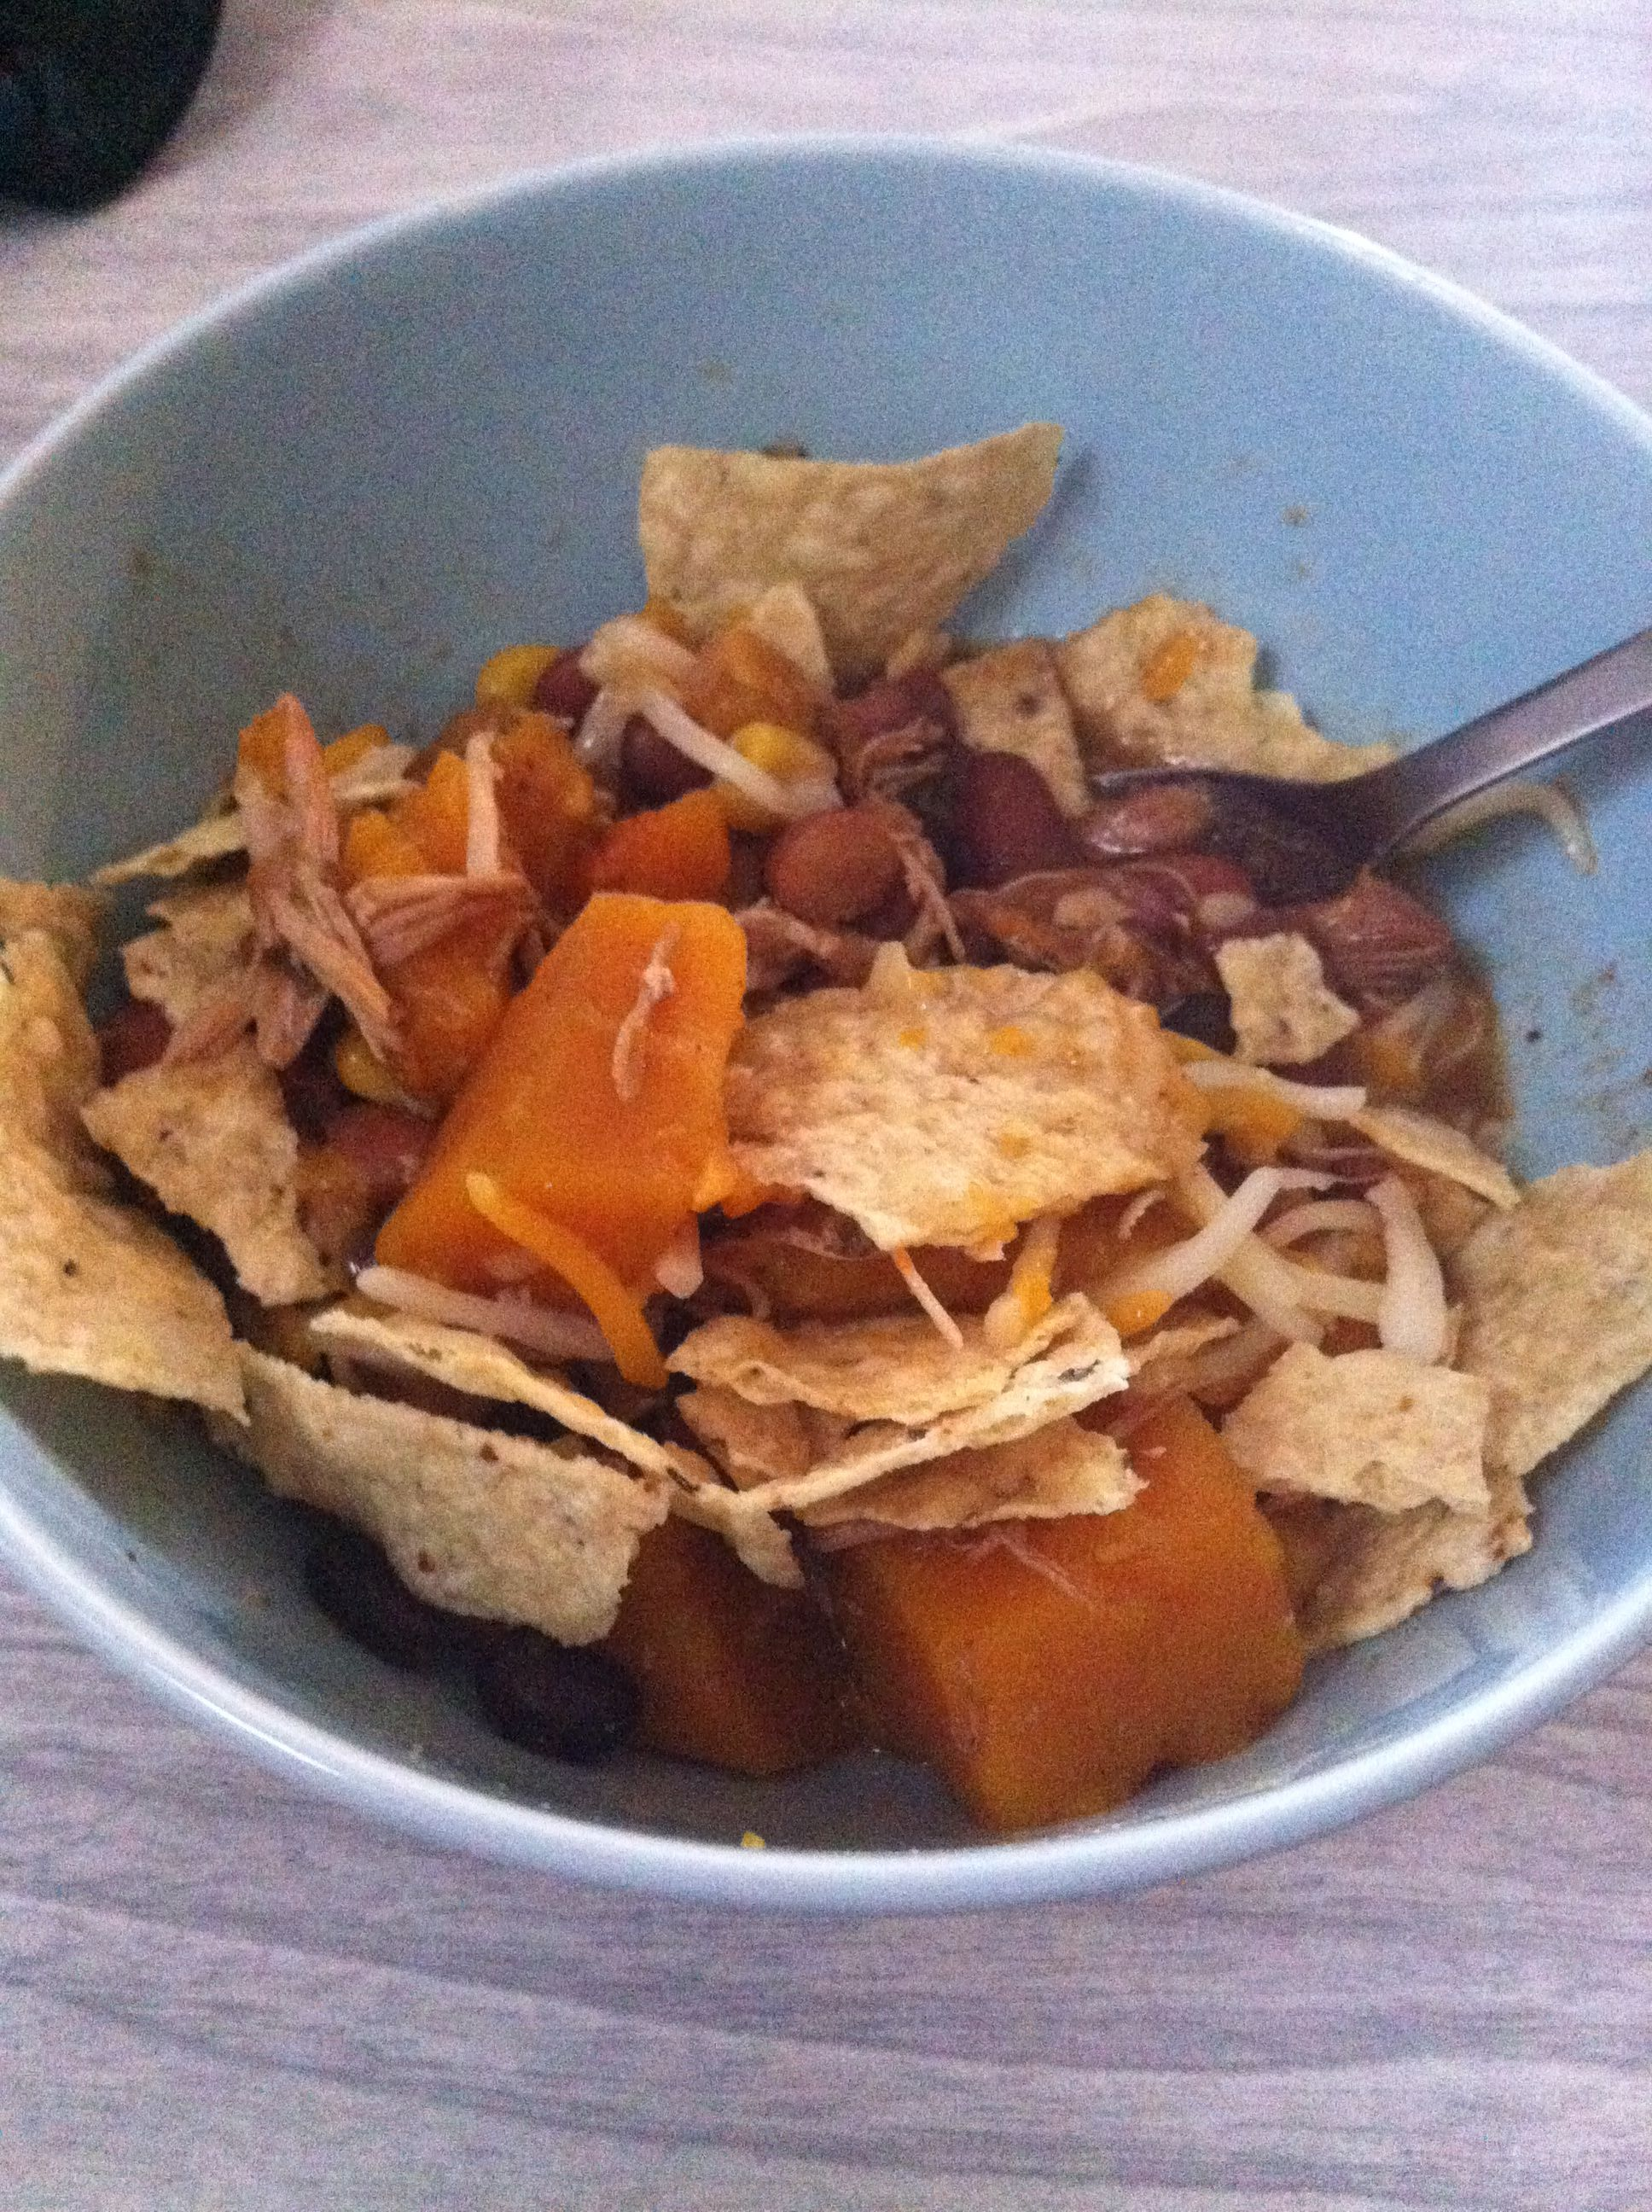 Crock pot white girl tortilla soup with butternut squash: Black and kidney beans Corn Chicken Butternut squash taco seasoning packet #tacoseasoningpacket Crock pot white girl tortilla soup with butternut squash: Black and kidney beans Corn Chicken Butternut squash taco seasoning packet #tacoseasoningpacket